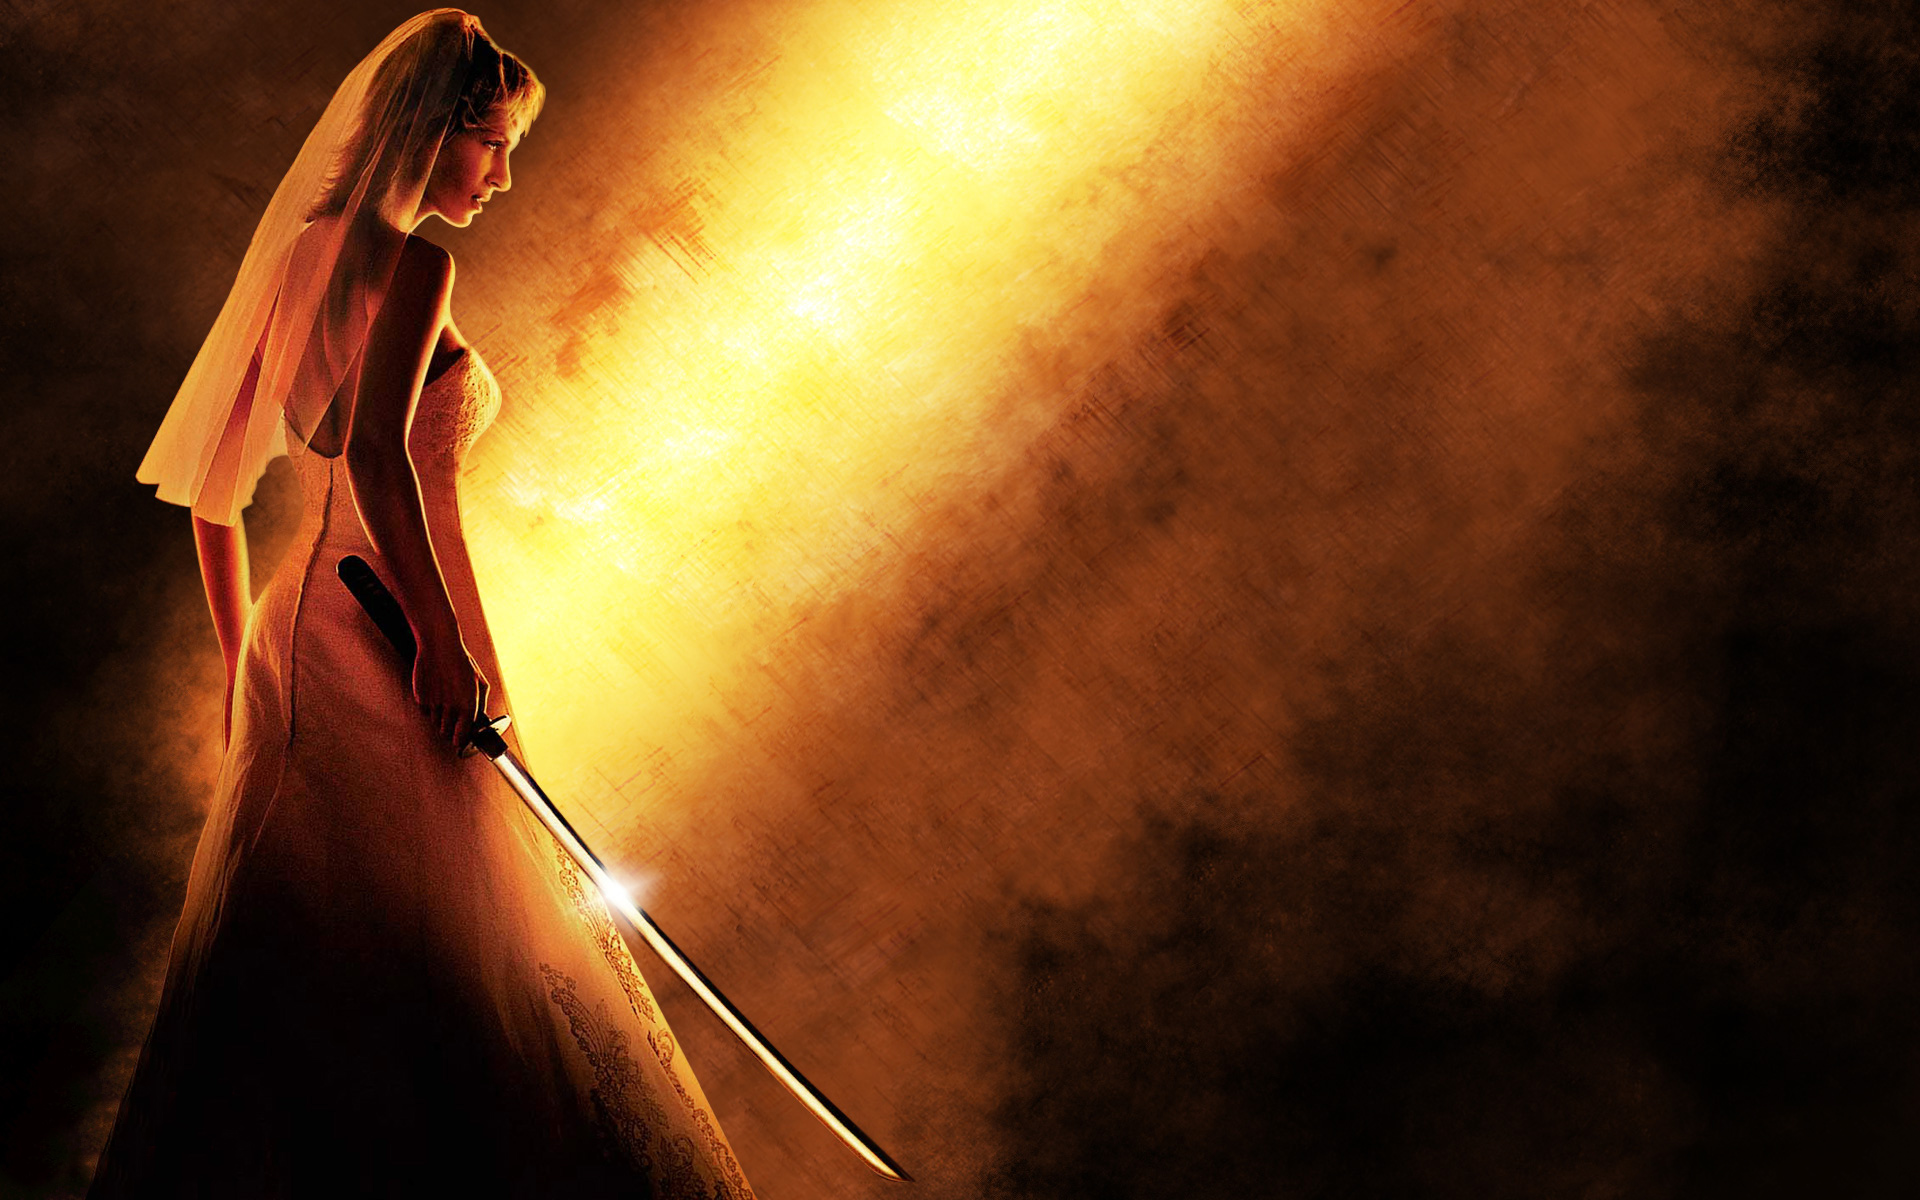 download movie killbill wallpaper - photo #2